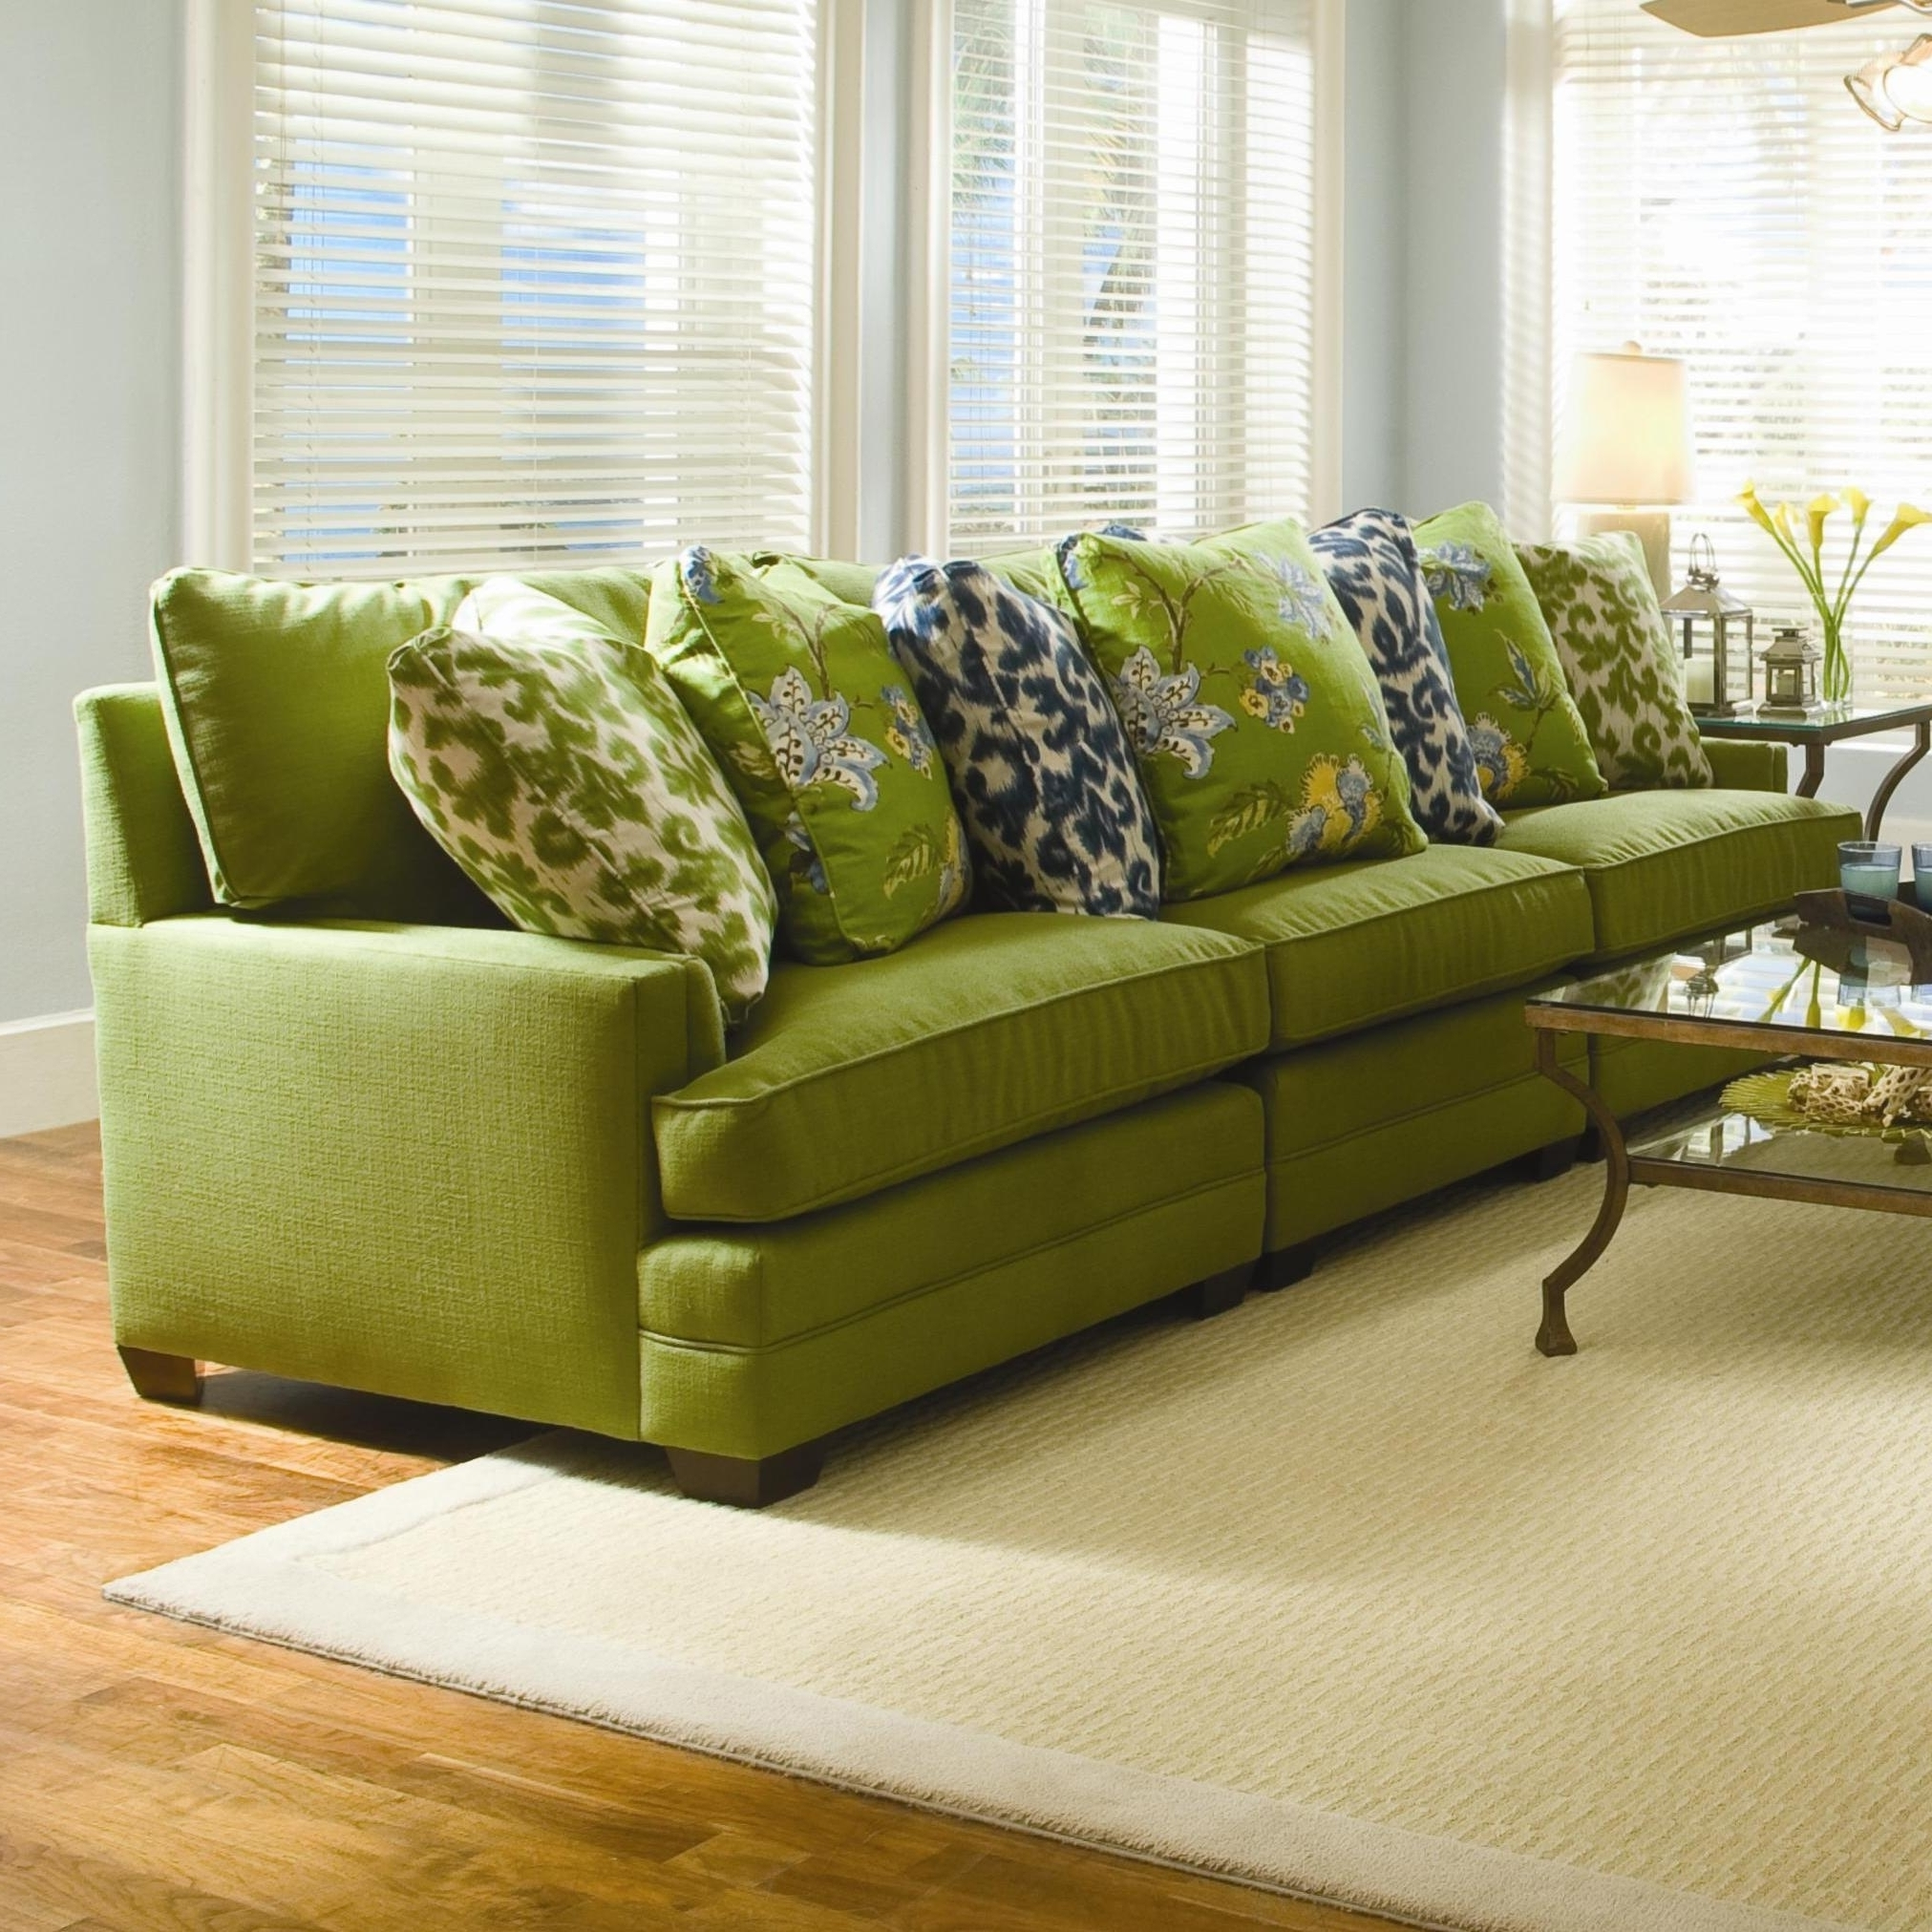 Favorite Wide Seat Sectional Sofas For Simple Wide Seat Sectional Sofas Within 20 Photos Wide Seat (View 6 of 15)